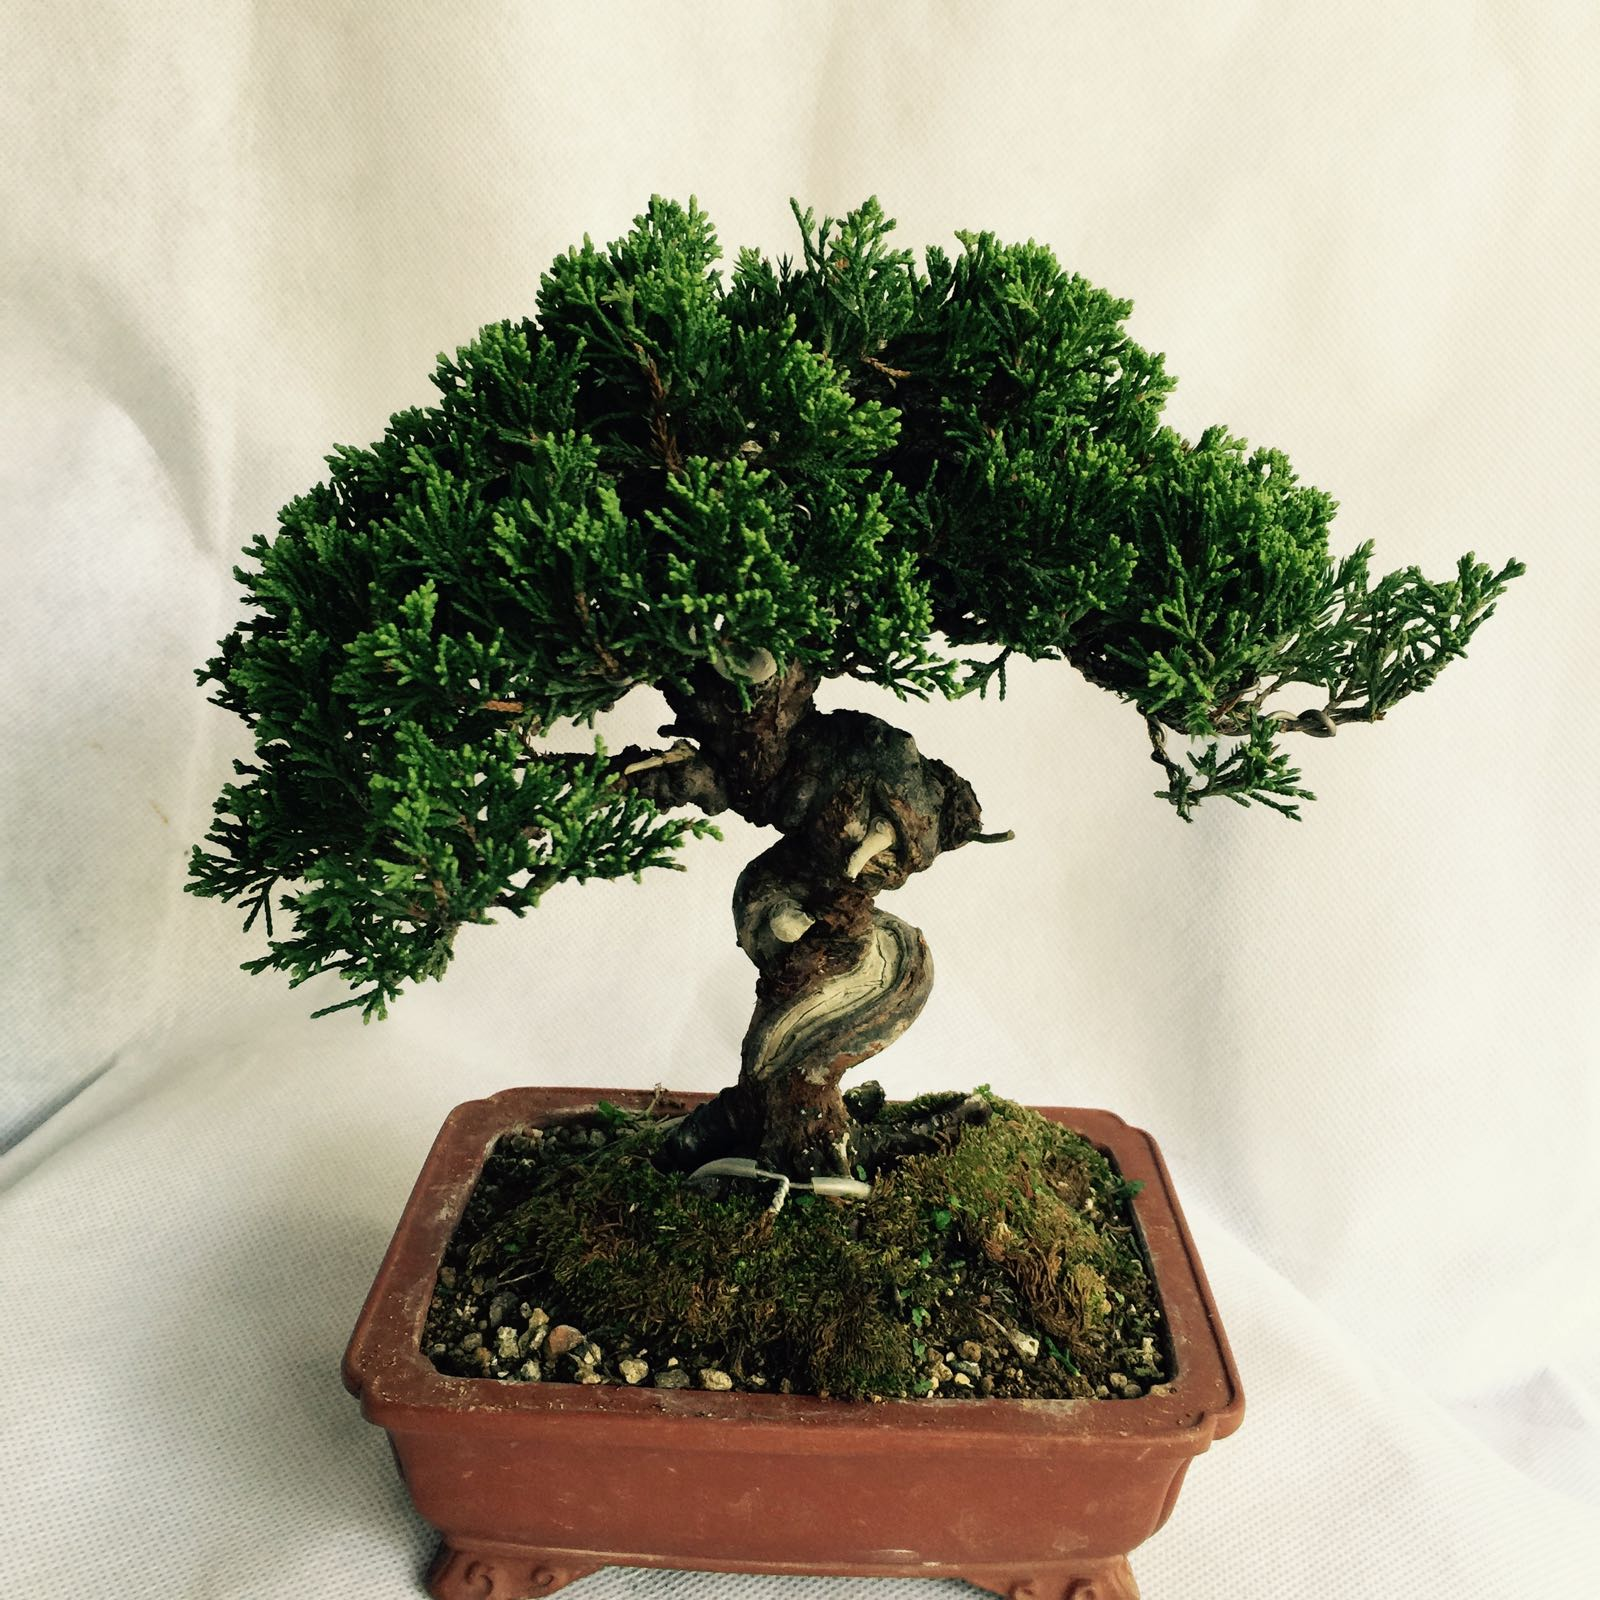 The Arts Of Beautiful Bonsai Lies In Boh39s Bonsai